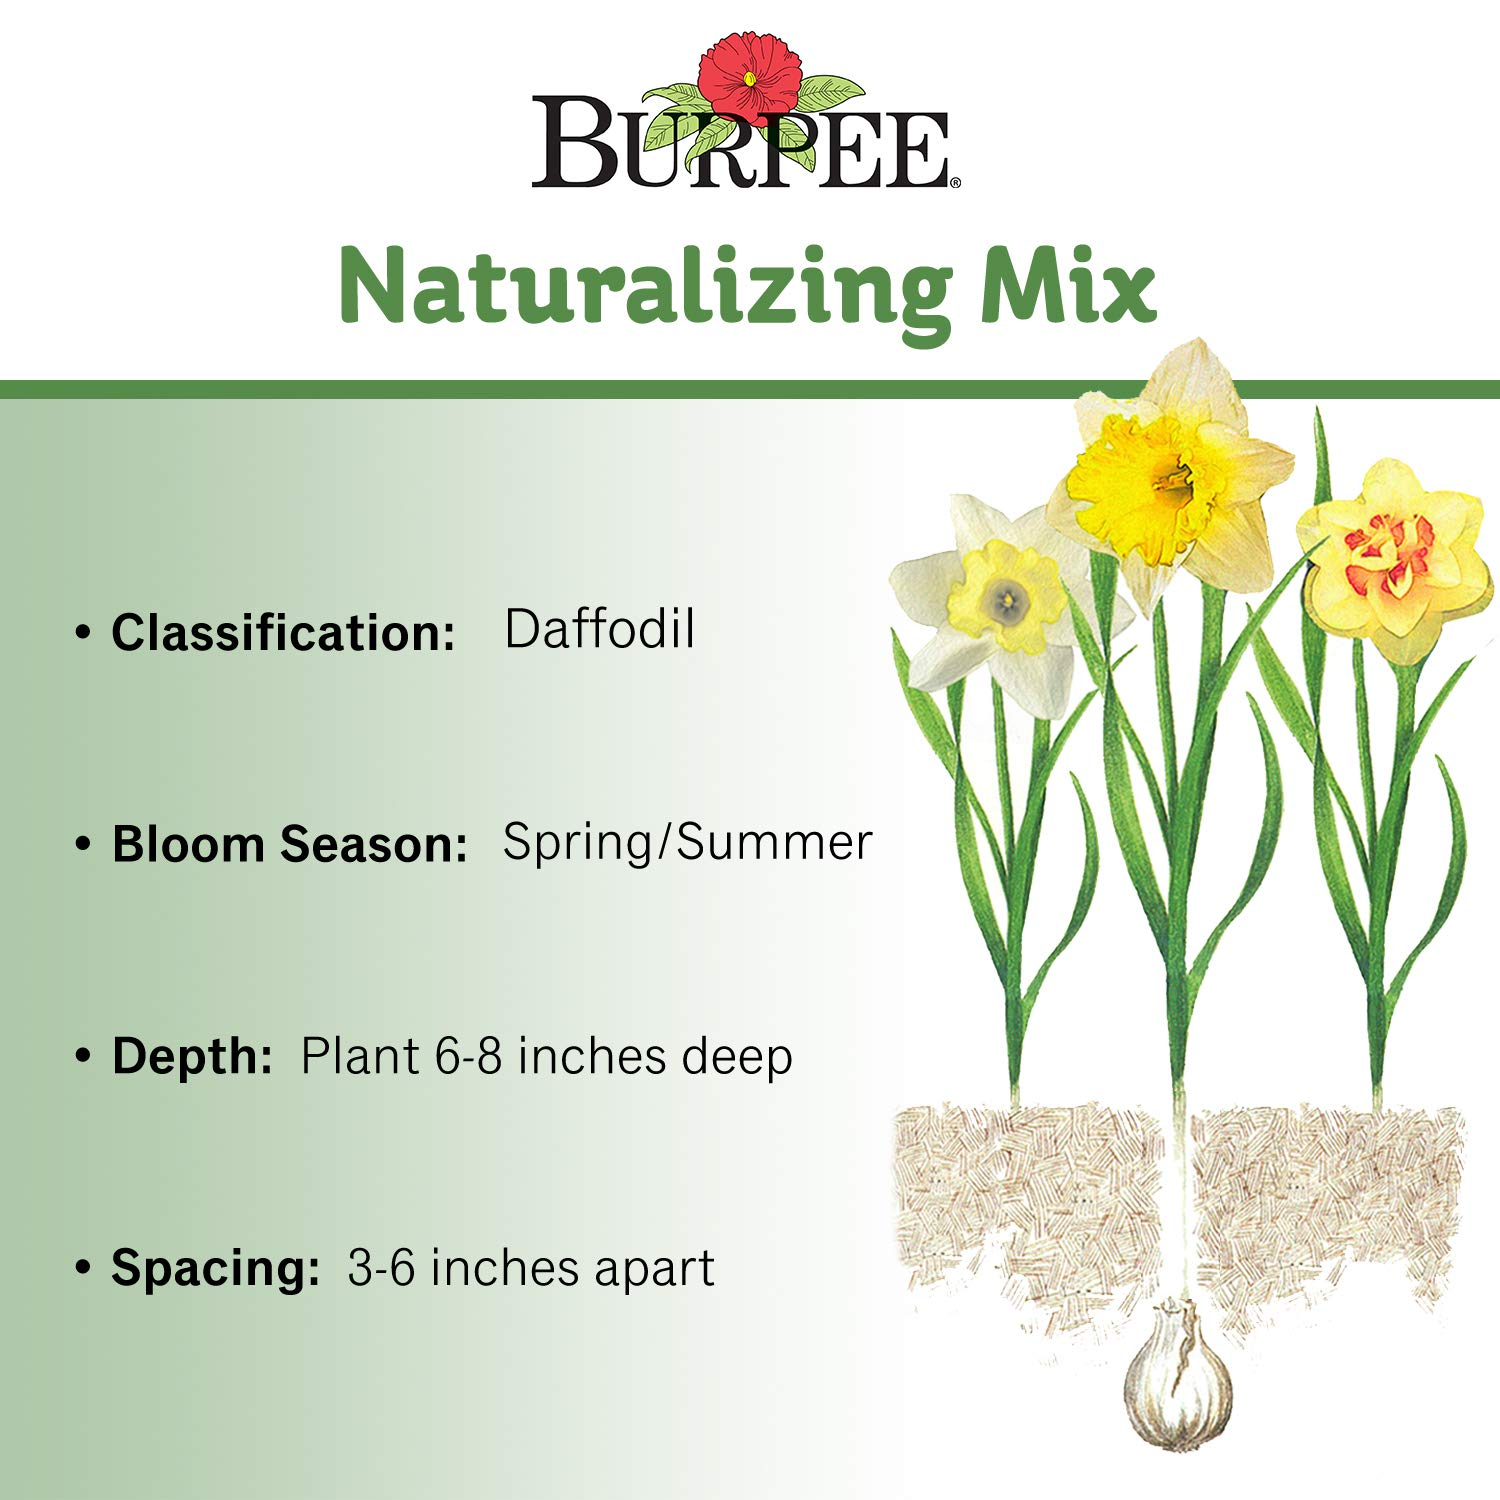 Burpee's Naturalizing Mix Daffodil - 150 Flower Bulbs | Multiple Colors by Burpee (Image #2)